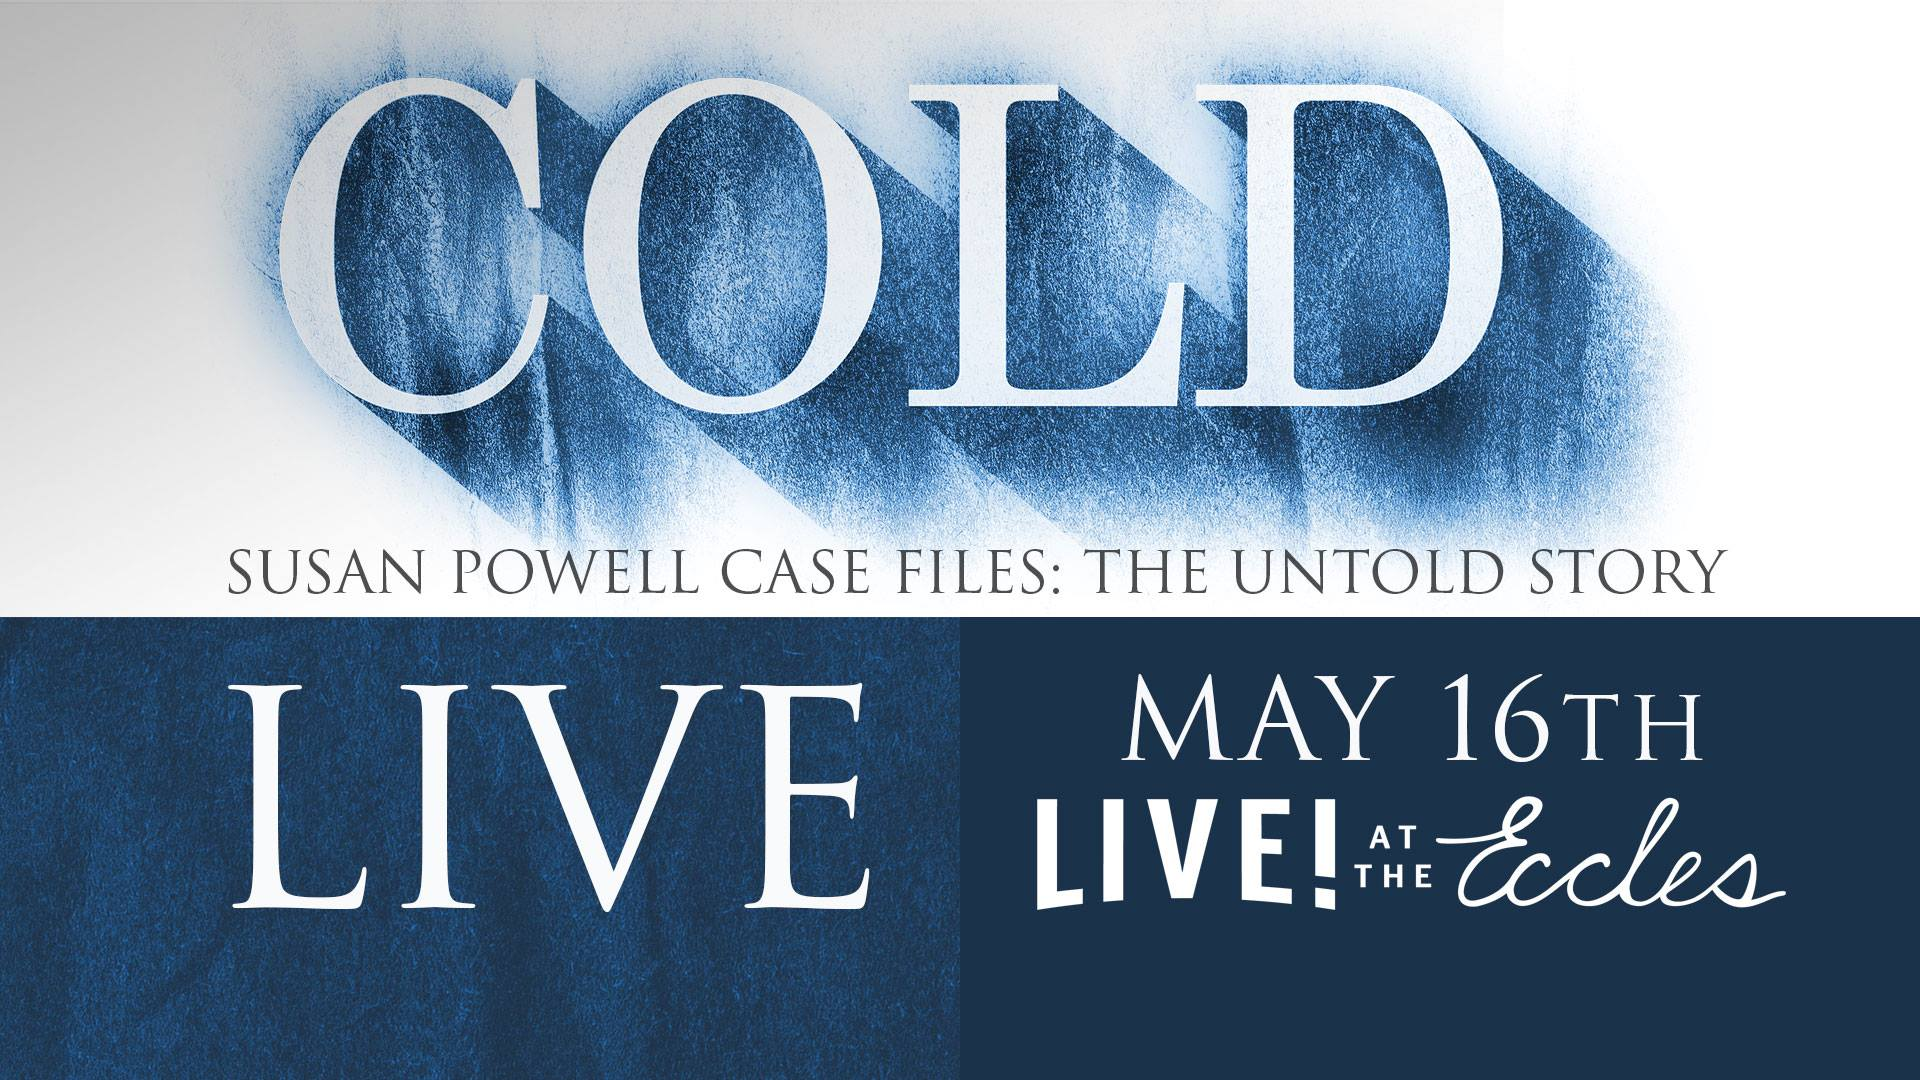 COLD: Susan Powell Case Files: The Untold Story LIVE